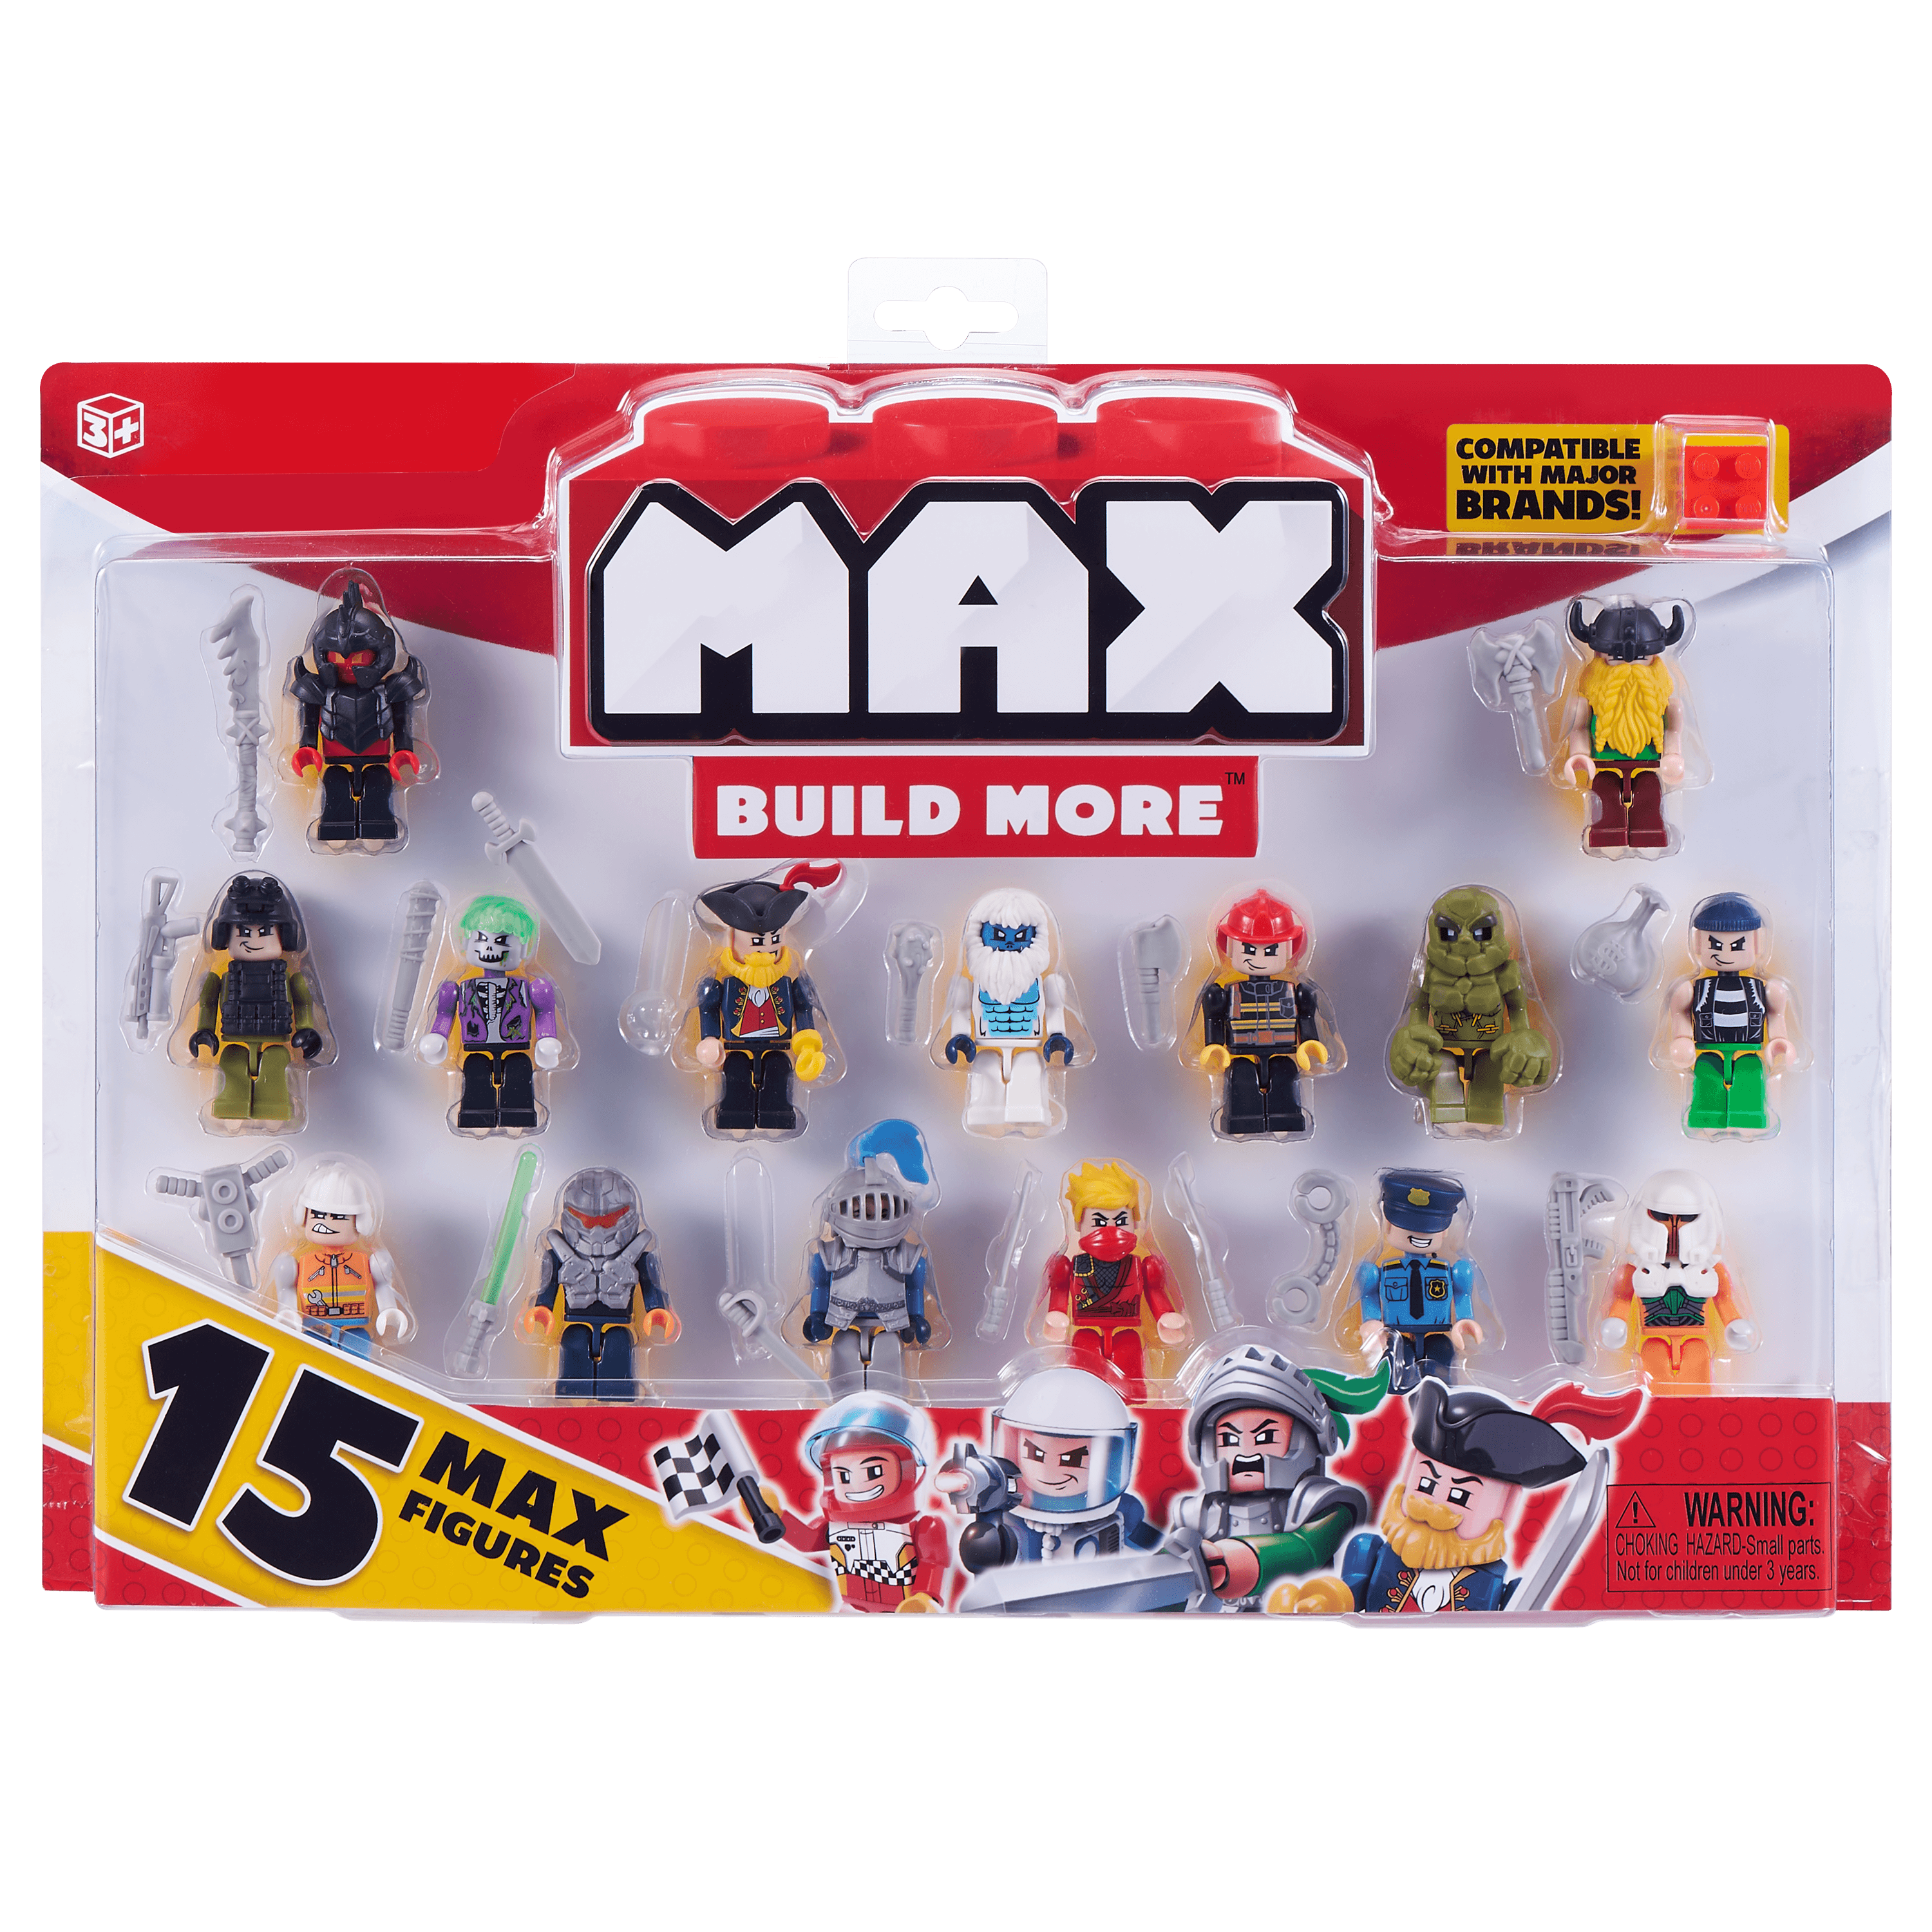 Max build more mini figure set (15 figures) - major brick brands compatible